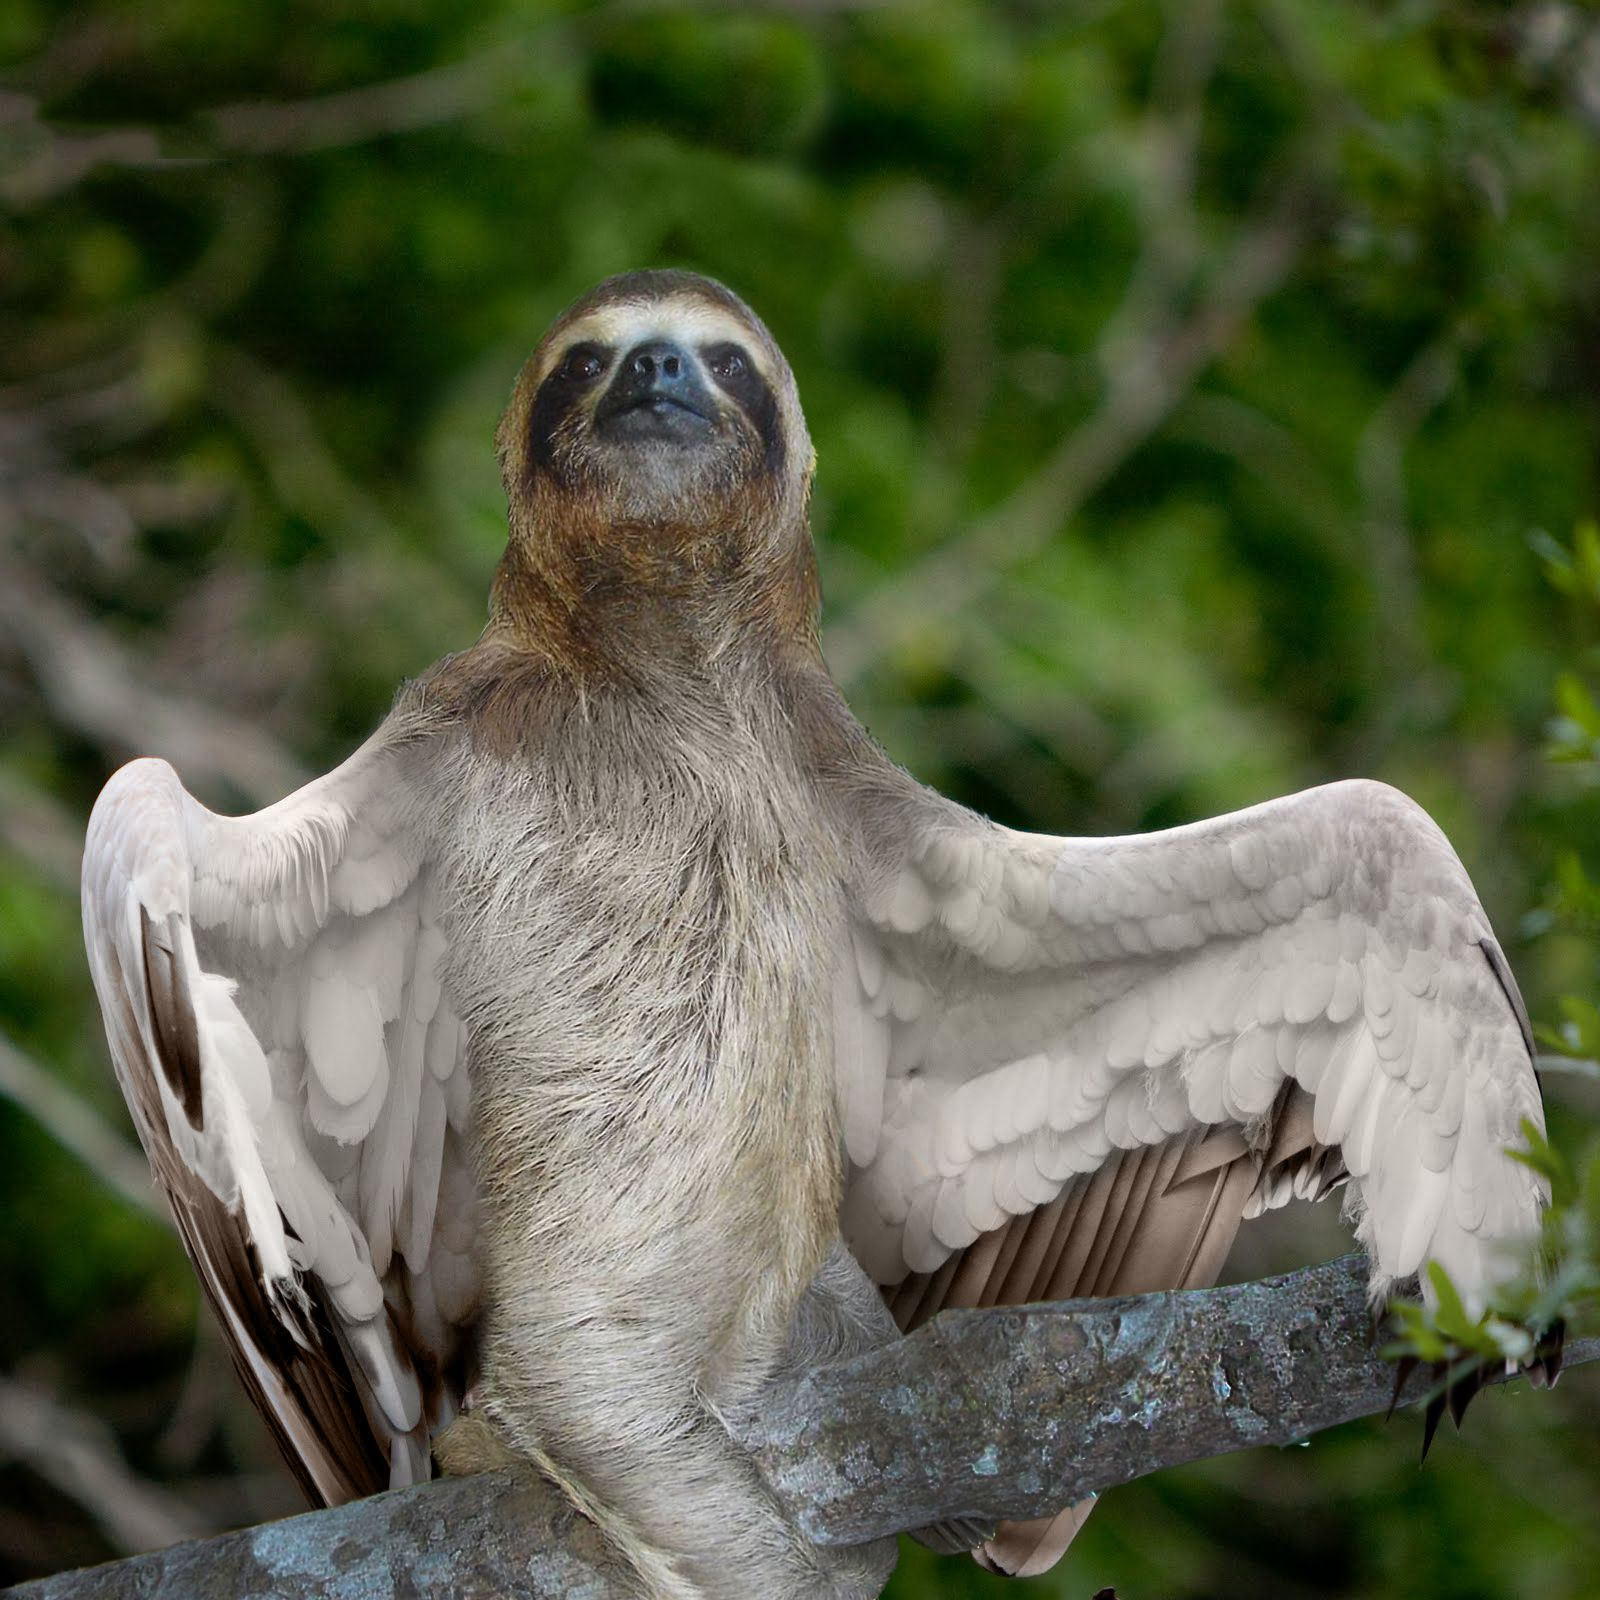 winged-sloth-hybrid-animal.jpg